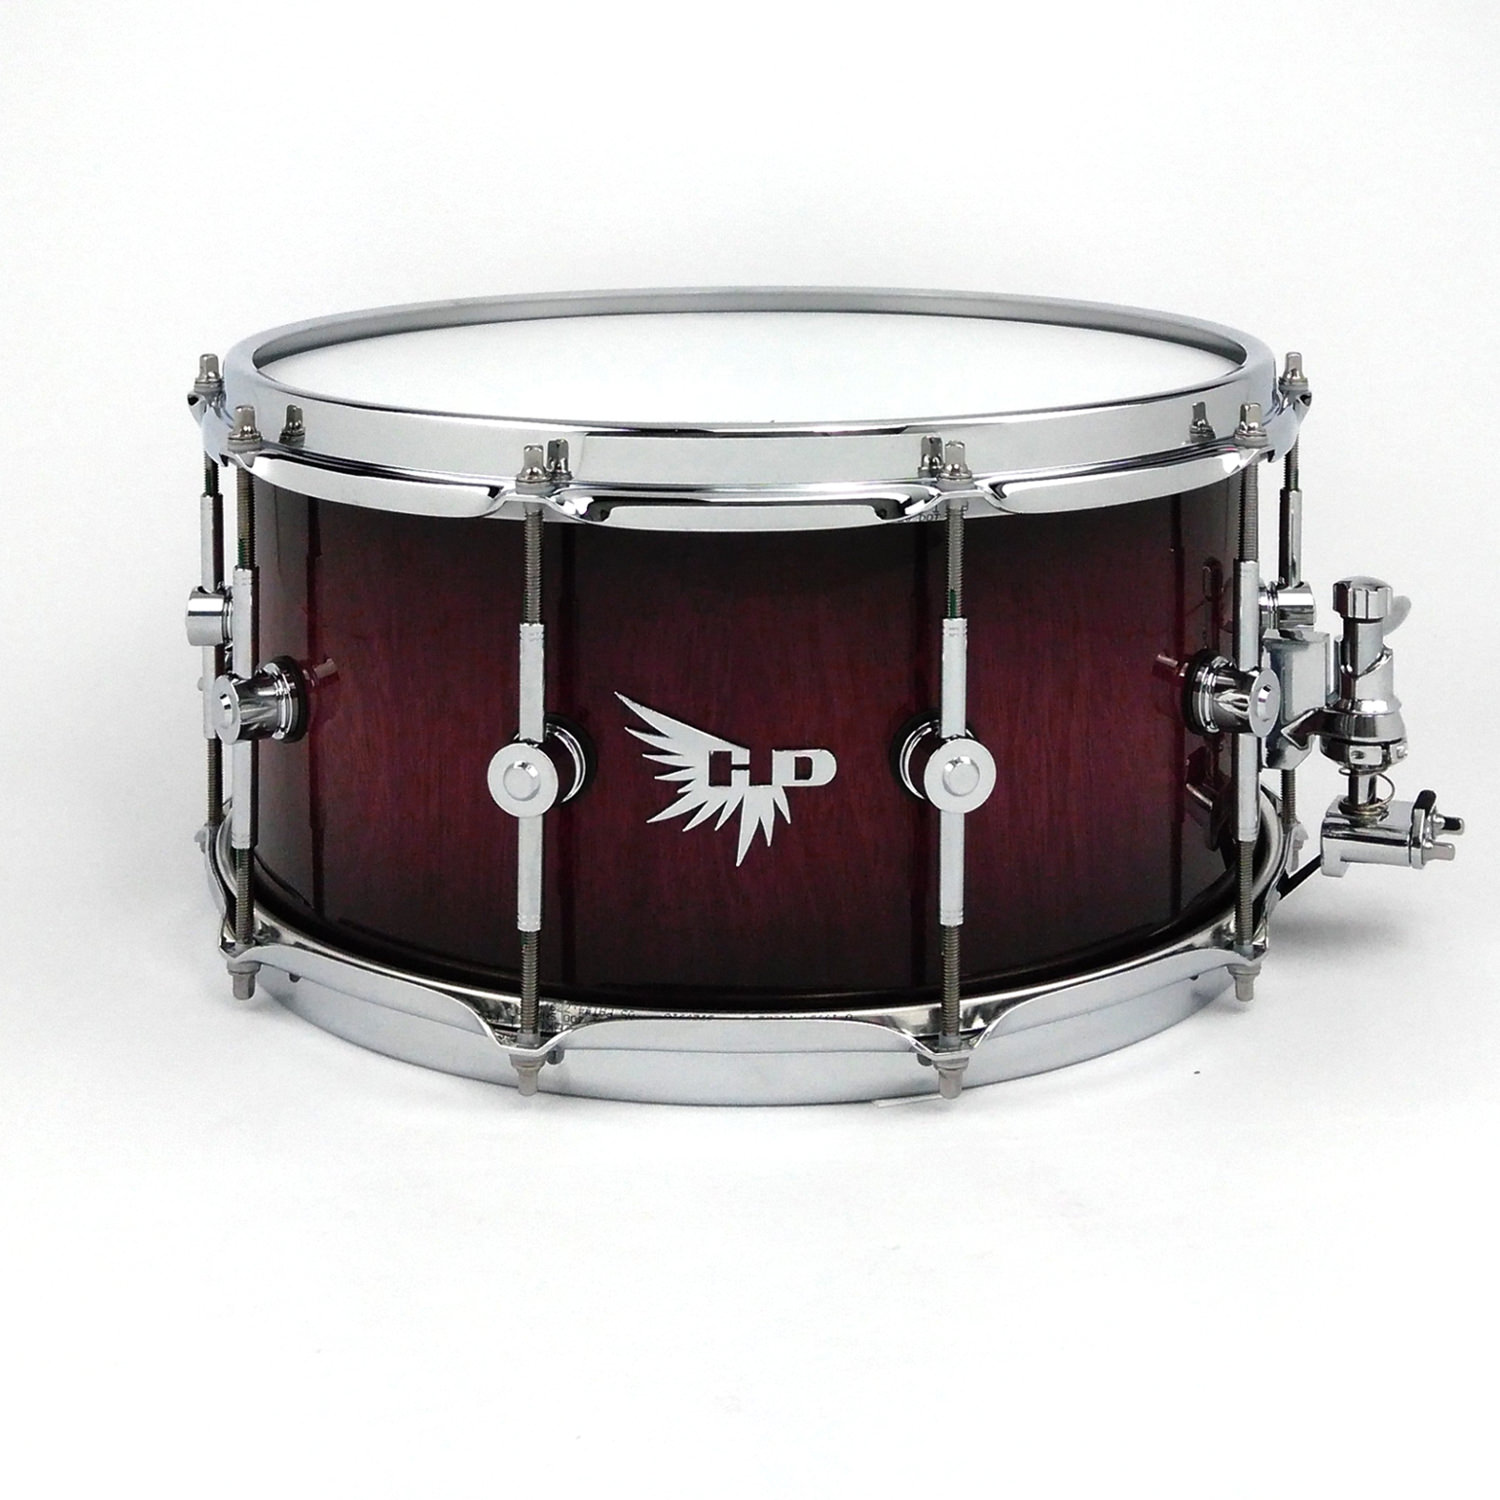 DW Purpleheart Snare Drum Hendrix Drums Black Burst Gloss Best Snare Drum HD